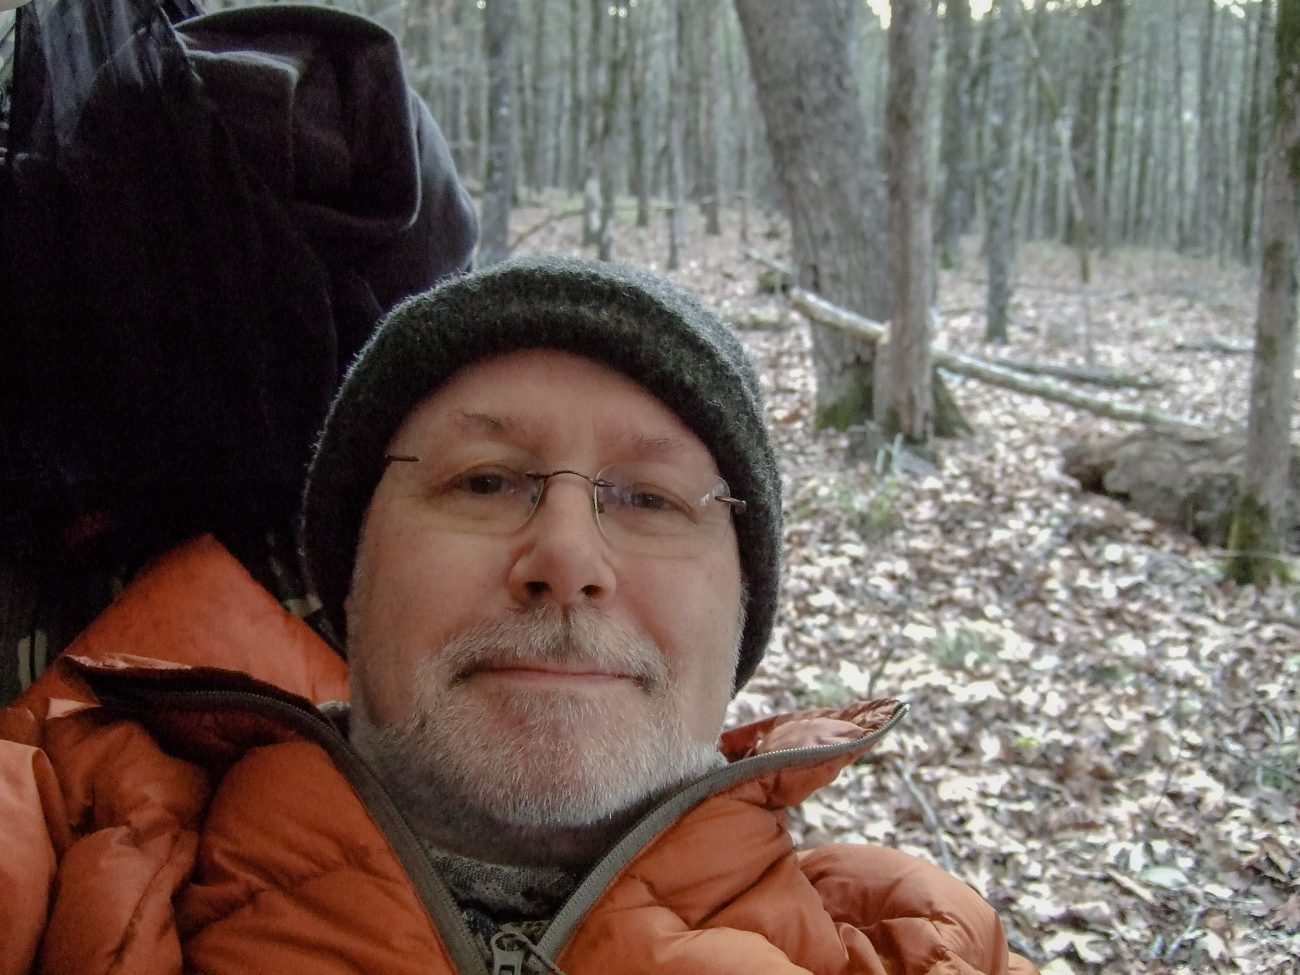 Color photograph of Gary Allman reclining in a Dutchware Chameleon hammock, Hercules Glades Wilderness, Missouri, USA. December 2020.